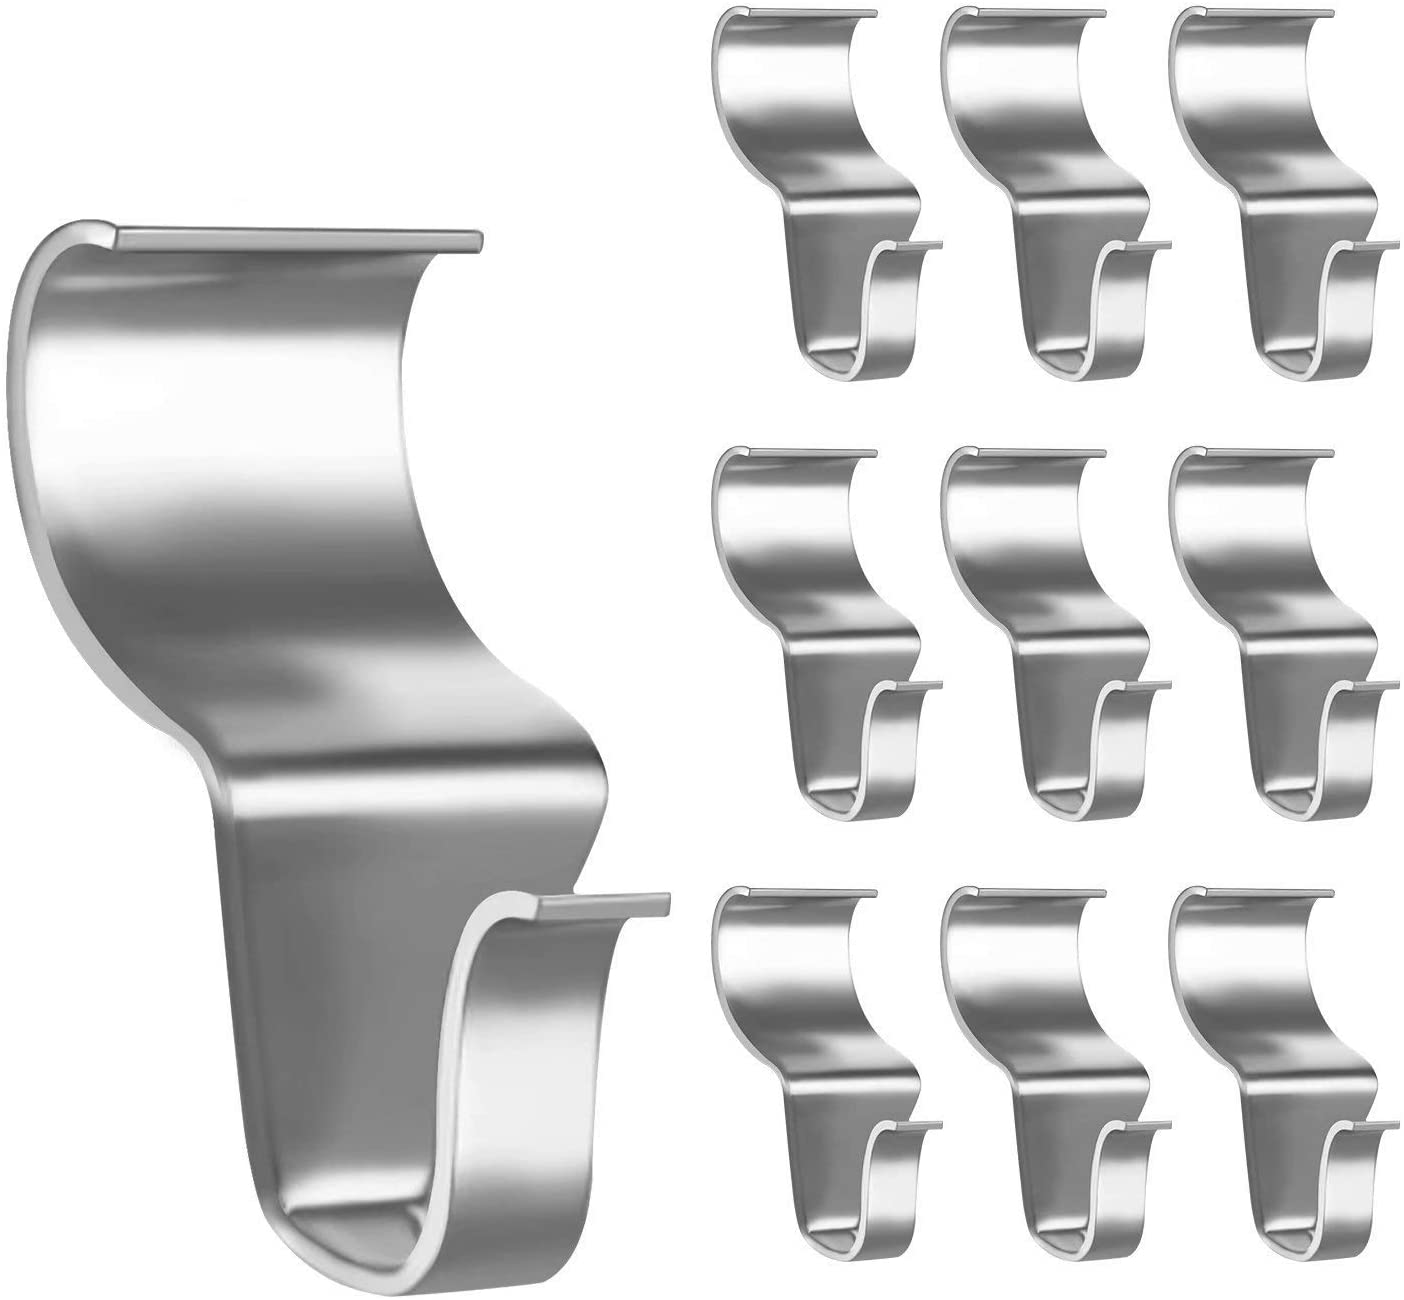 OCEST Vinyl Siding Hooks for Hanging Outdoor Clock, Heavy Duty Stainless Steel Low Profile No Hole Hanger Hooks for Outdoor Decoration Hanger Vinyl Siding Clips-10 Packs